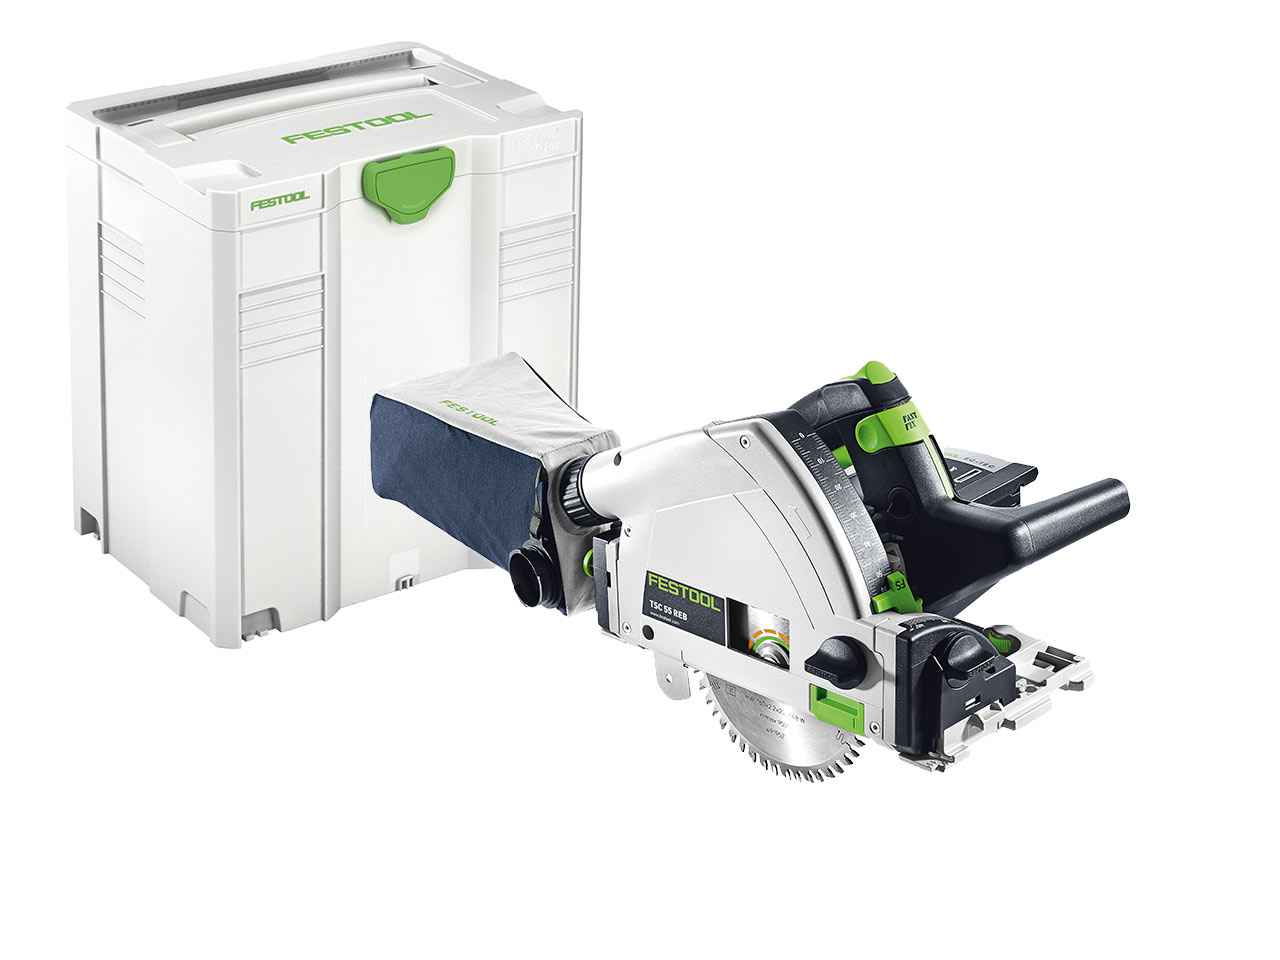 festool tsc 55 li reb basic 18v cordless plunge saw bare unit in systainer 5 ebay. Black Bedroom Furniture Sets. Home Design Ideas